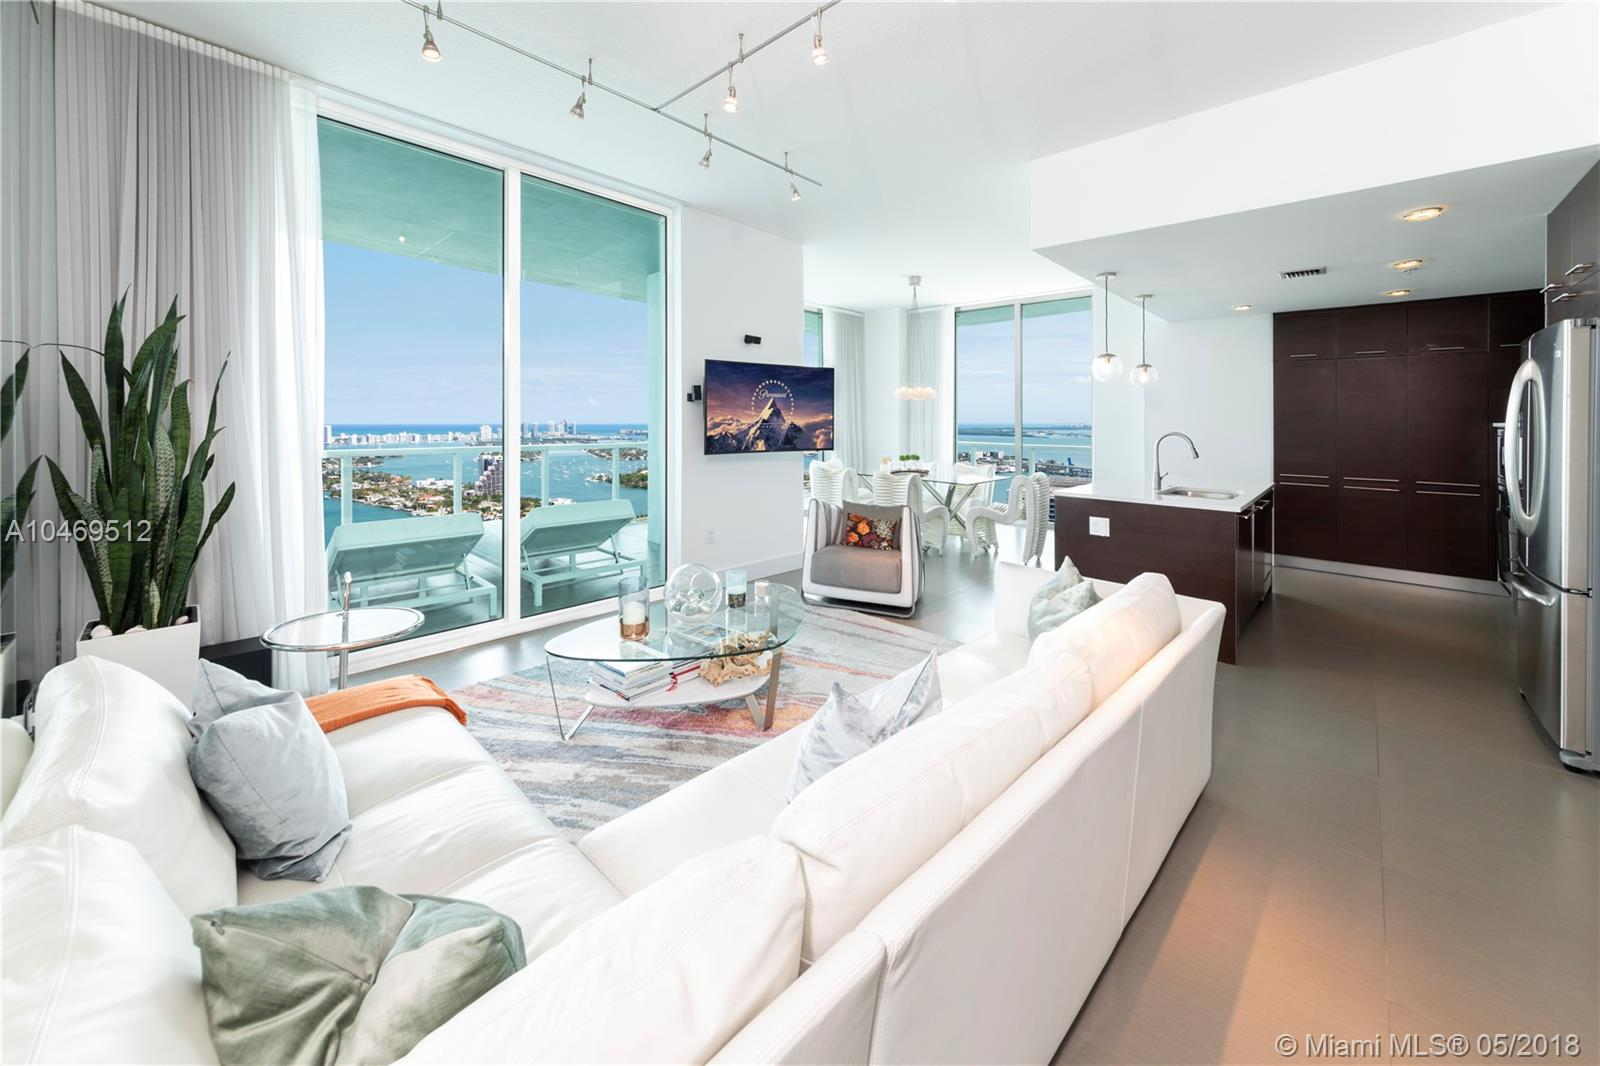 Amazing Panoramic Bay, Ocean And City Views Overlooking Biscayne Bay And Miami Beach From This Fully Furnished 3 Bedroom/3.5 Bathroom Penthouse. Quantum On The Bay Features A State Of The Art 7, 000 Sq. Ft. Gym, 2 Pools, A Resident'S Club-House, Movie Theater, Valet, And Much More. Located In The Heart Of Miami'S Arts & Entertainment District, Quantum Is Right Across The Street From Margaret Pace Park, Offering Tennis, Basketball, And Volleyball Courts, As Well As A Dog Park And More. Just Minutes From American Airlines Arena, Adrienne Arsht Center, Perez Art Museum And The Frost Science Museum.